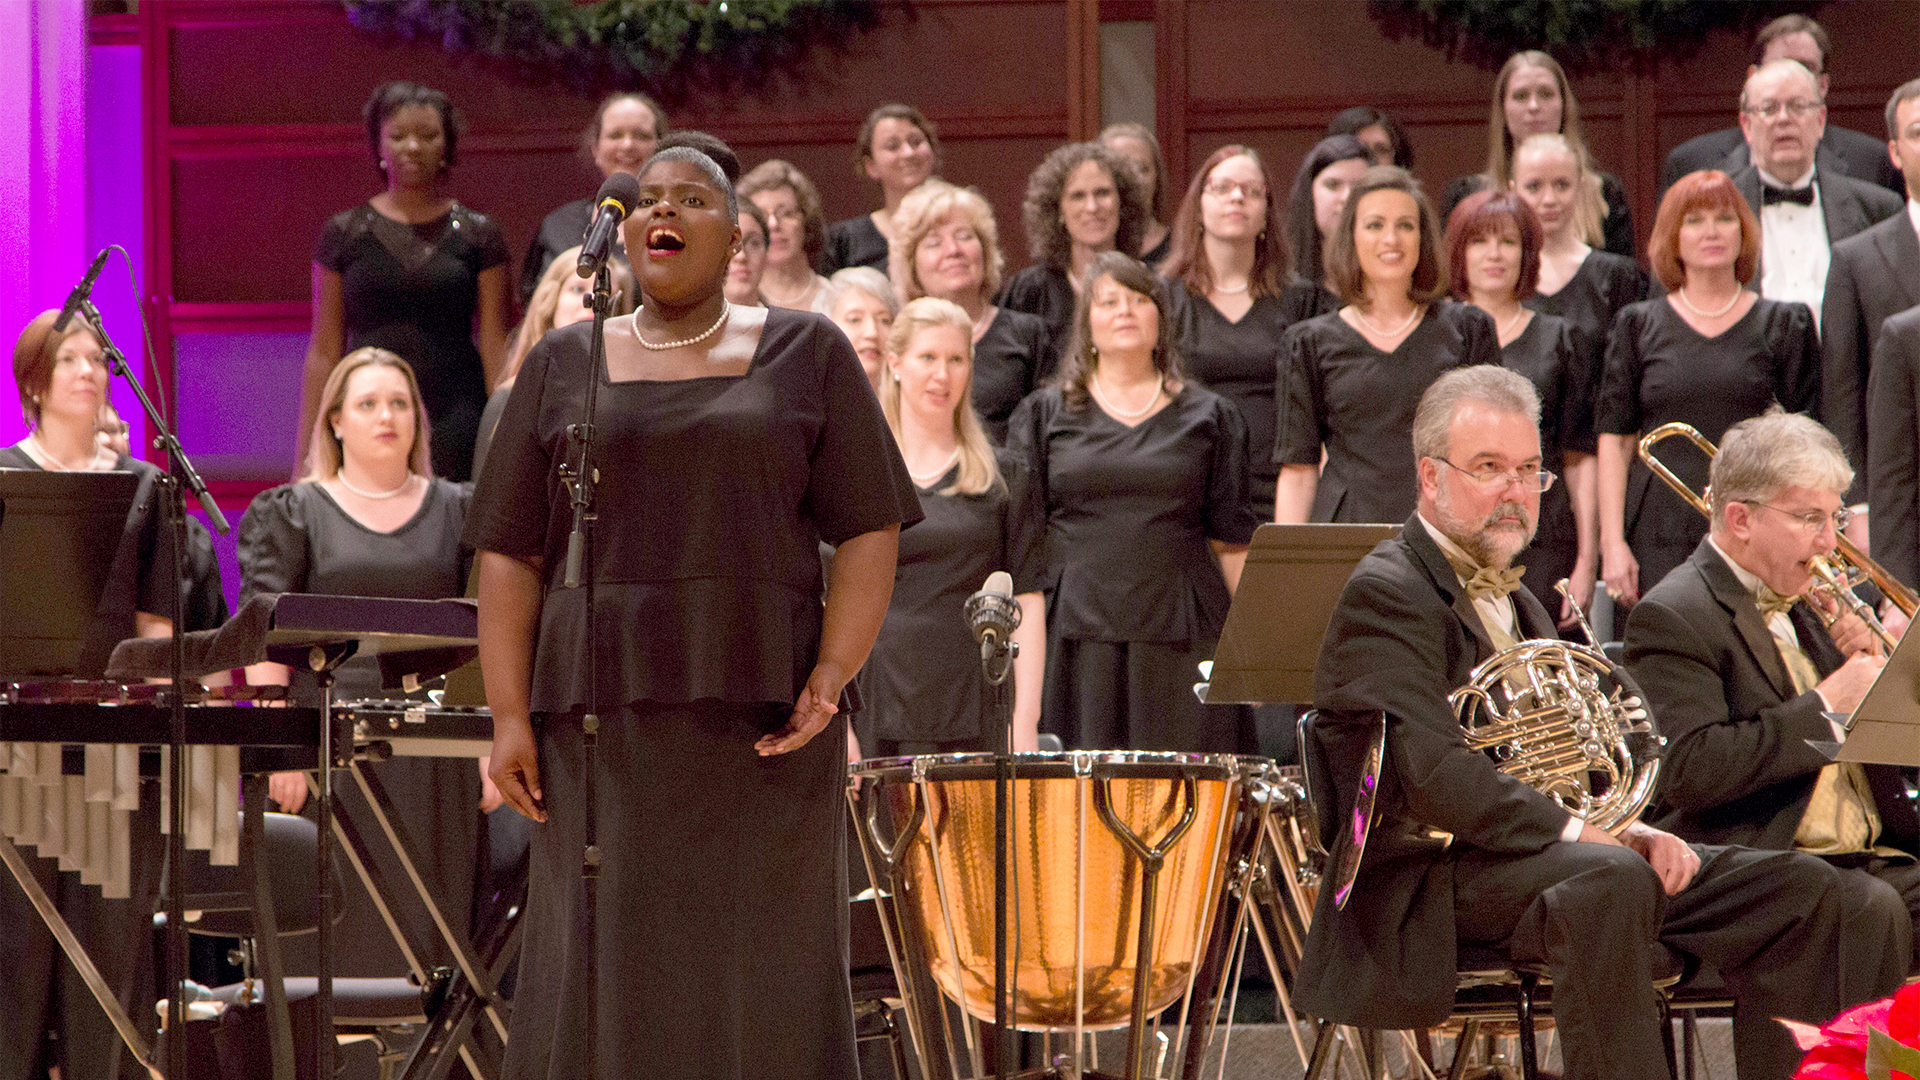 Watch North Carolina Master Chorale: Joy of the Season, Friday, December 8, at 9 PM on UNC-TV